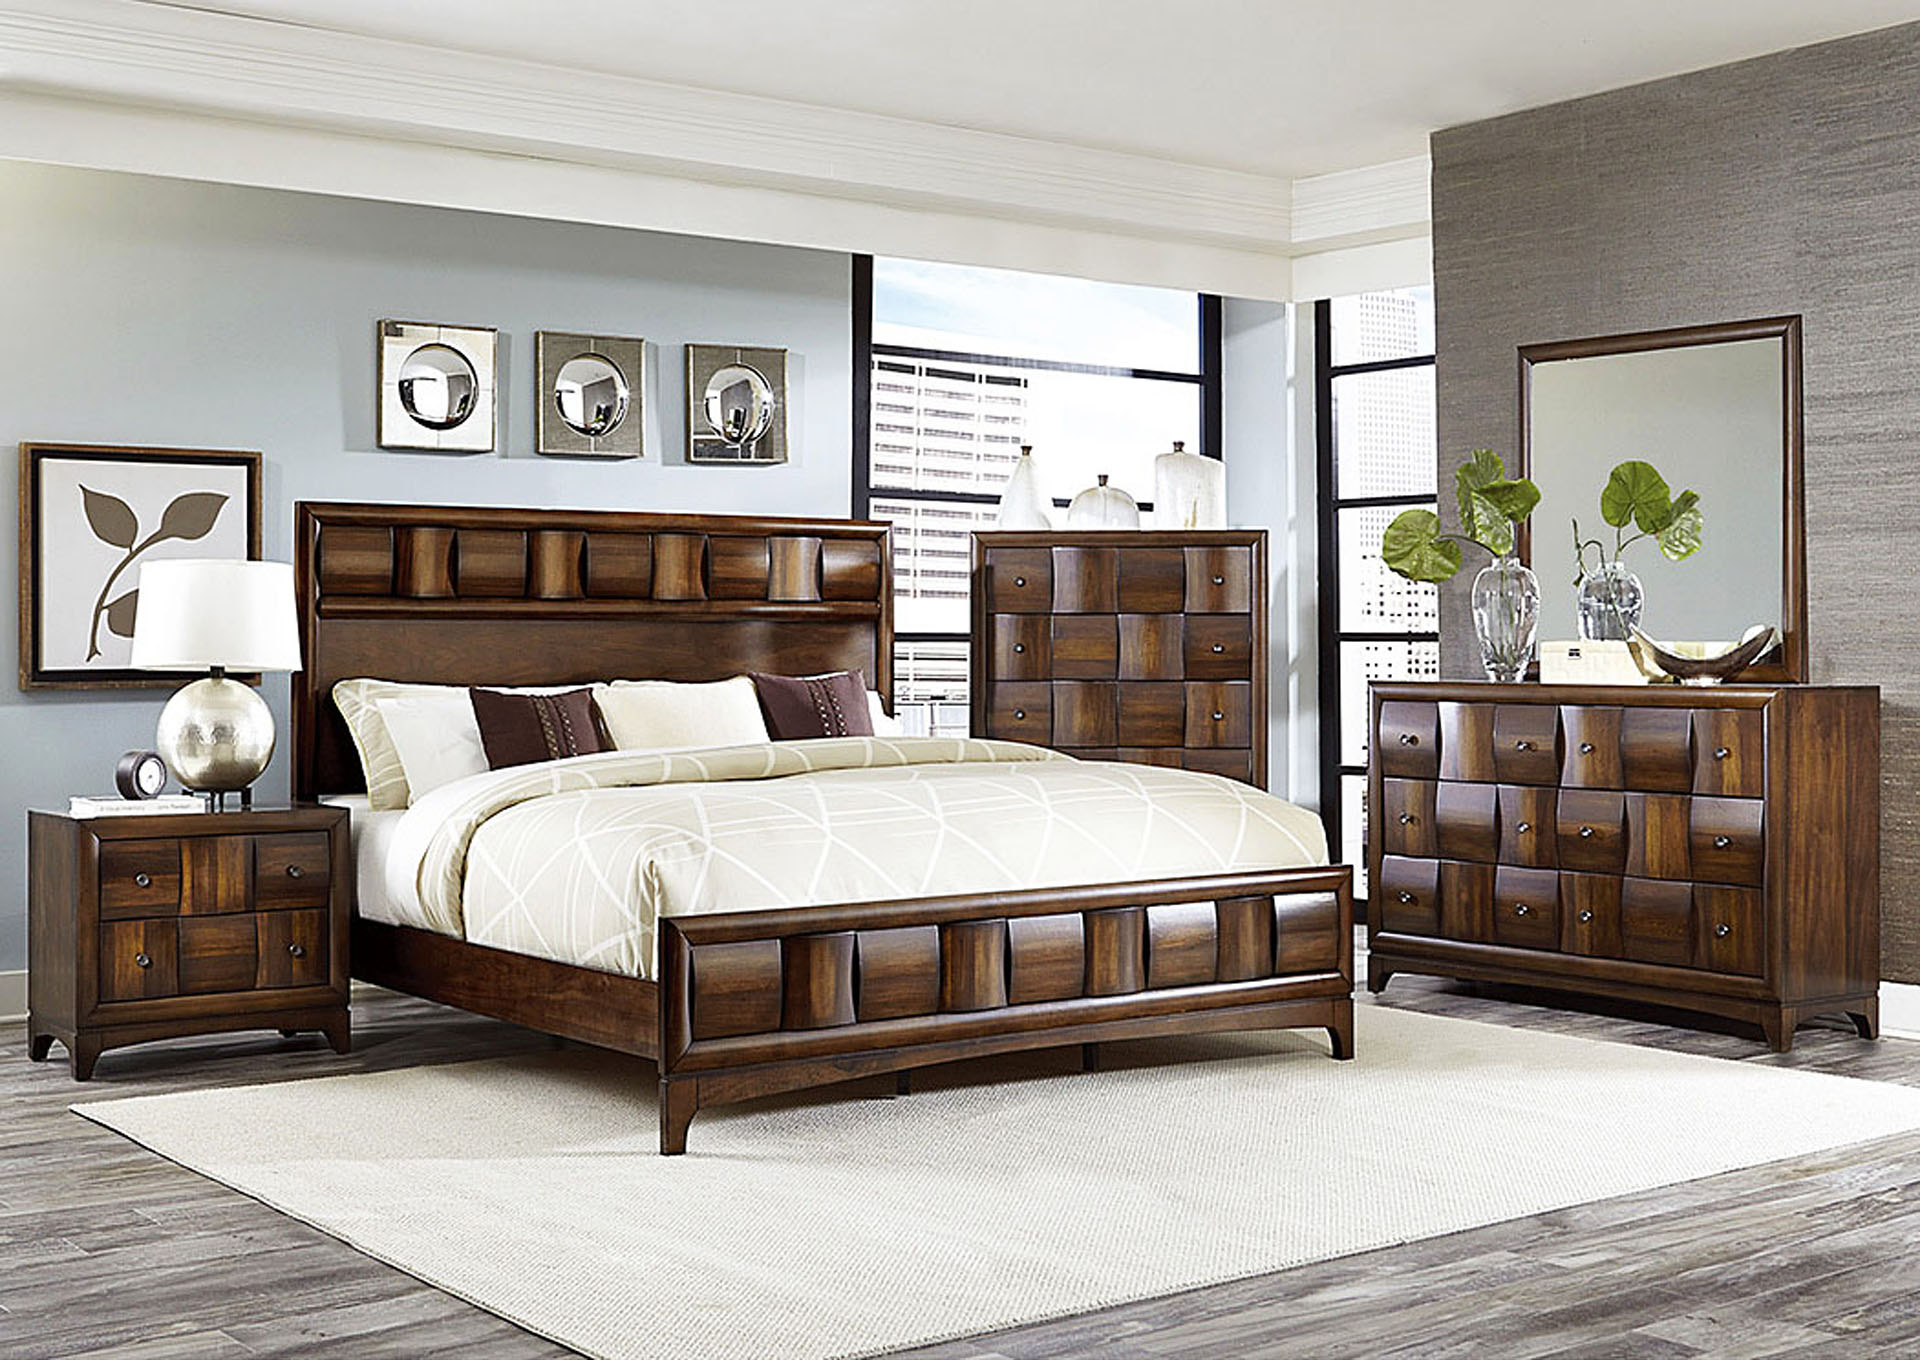 Porter Warm Walnut Queen Panel Bed w/ Dresser, Mirror and 2 Nightstands,Homelegance